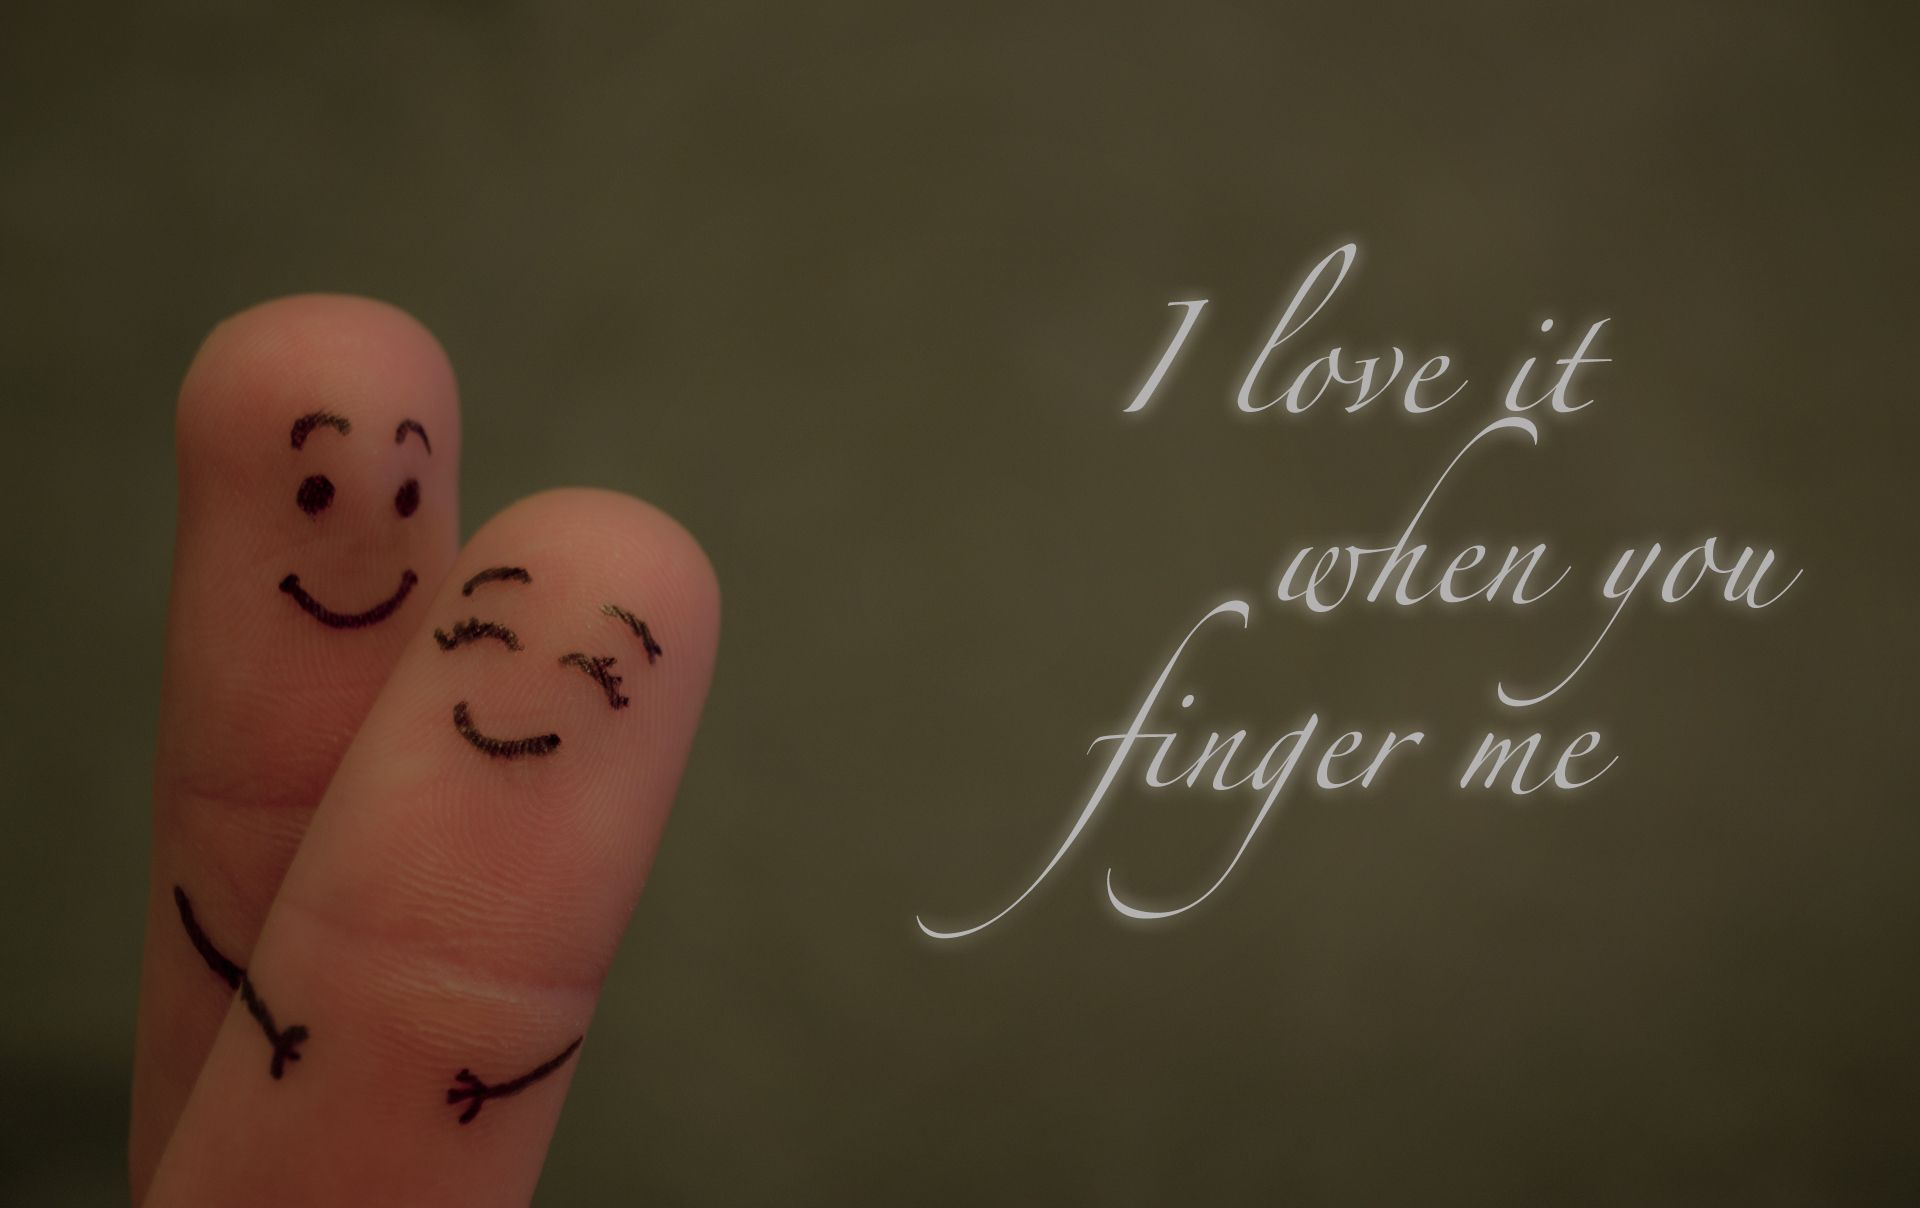 Love Wallpaper To Wife : cute finger love scene like hug with quotes HD wallpaper ...